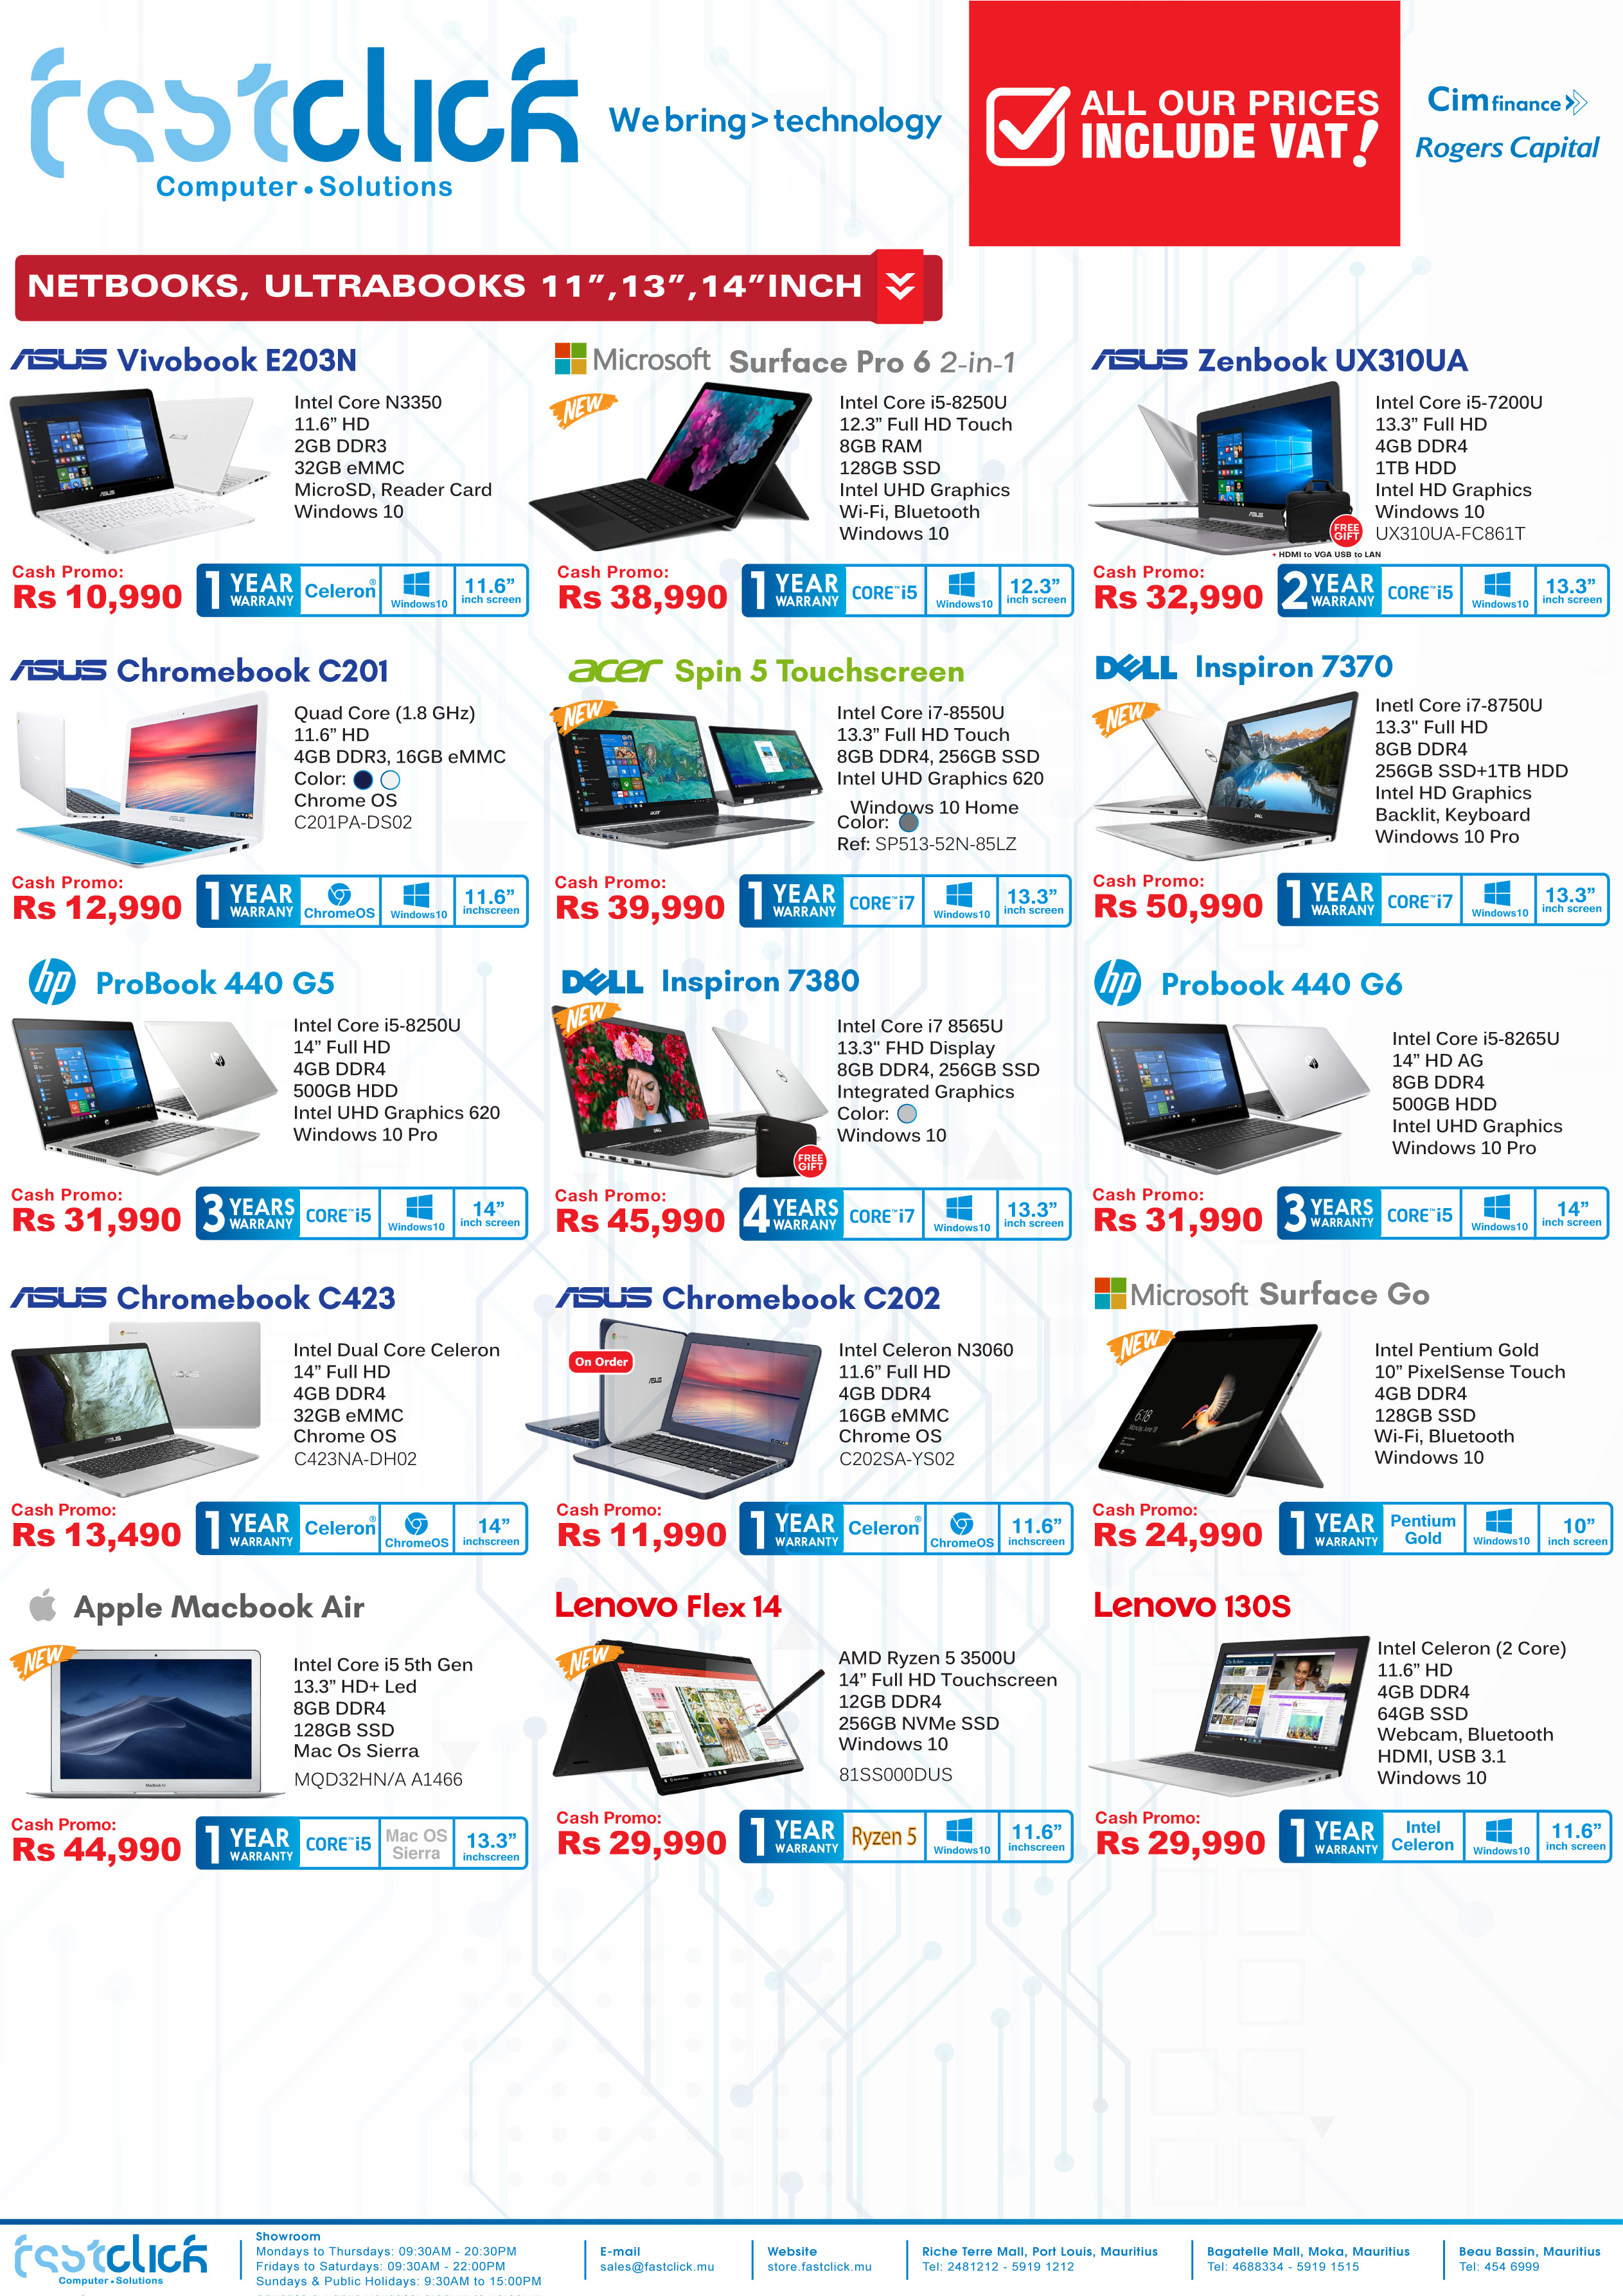 page-1-netbooks-ultrabooks-11-13-14inch-141219.jpg